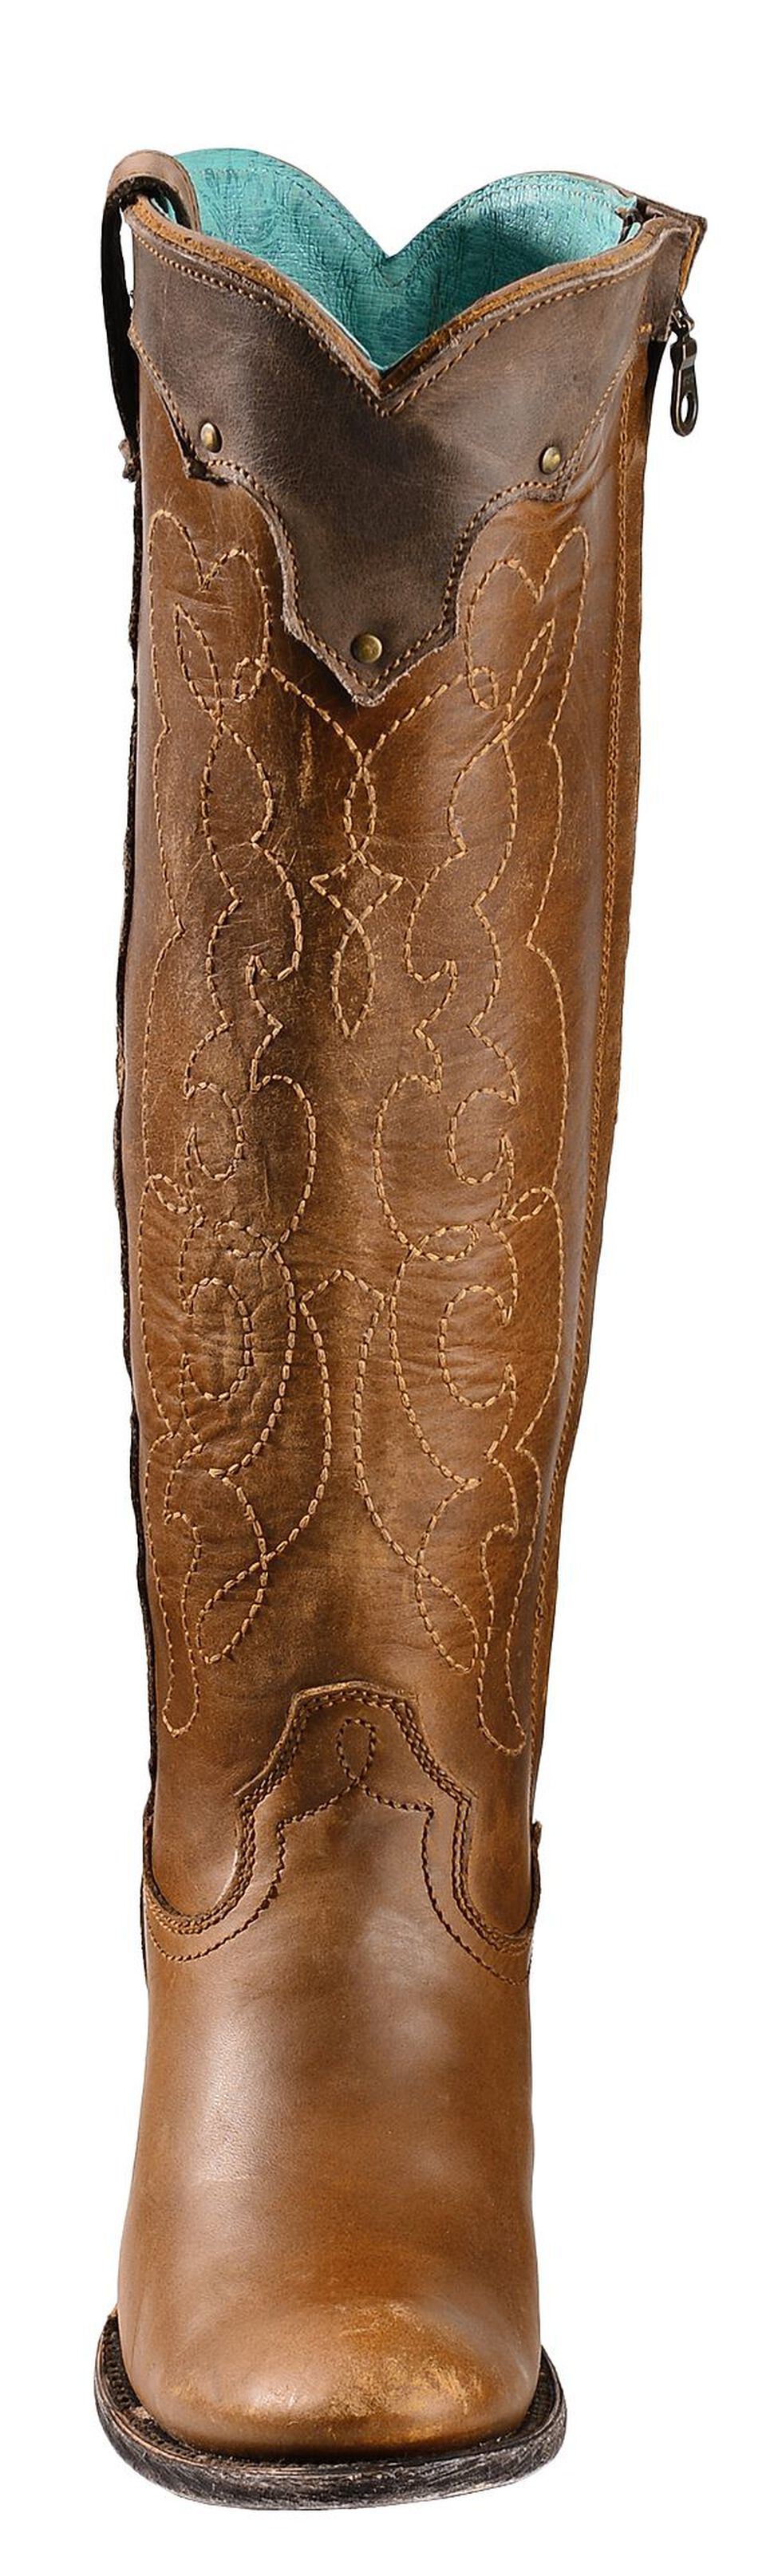 Corral Kats Natural Westport Cowgirl Boots - Round Toe, Natural, hi-res